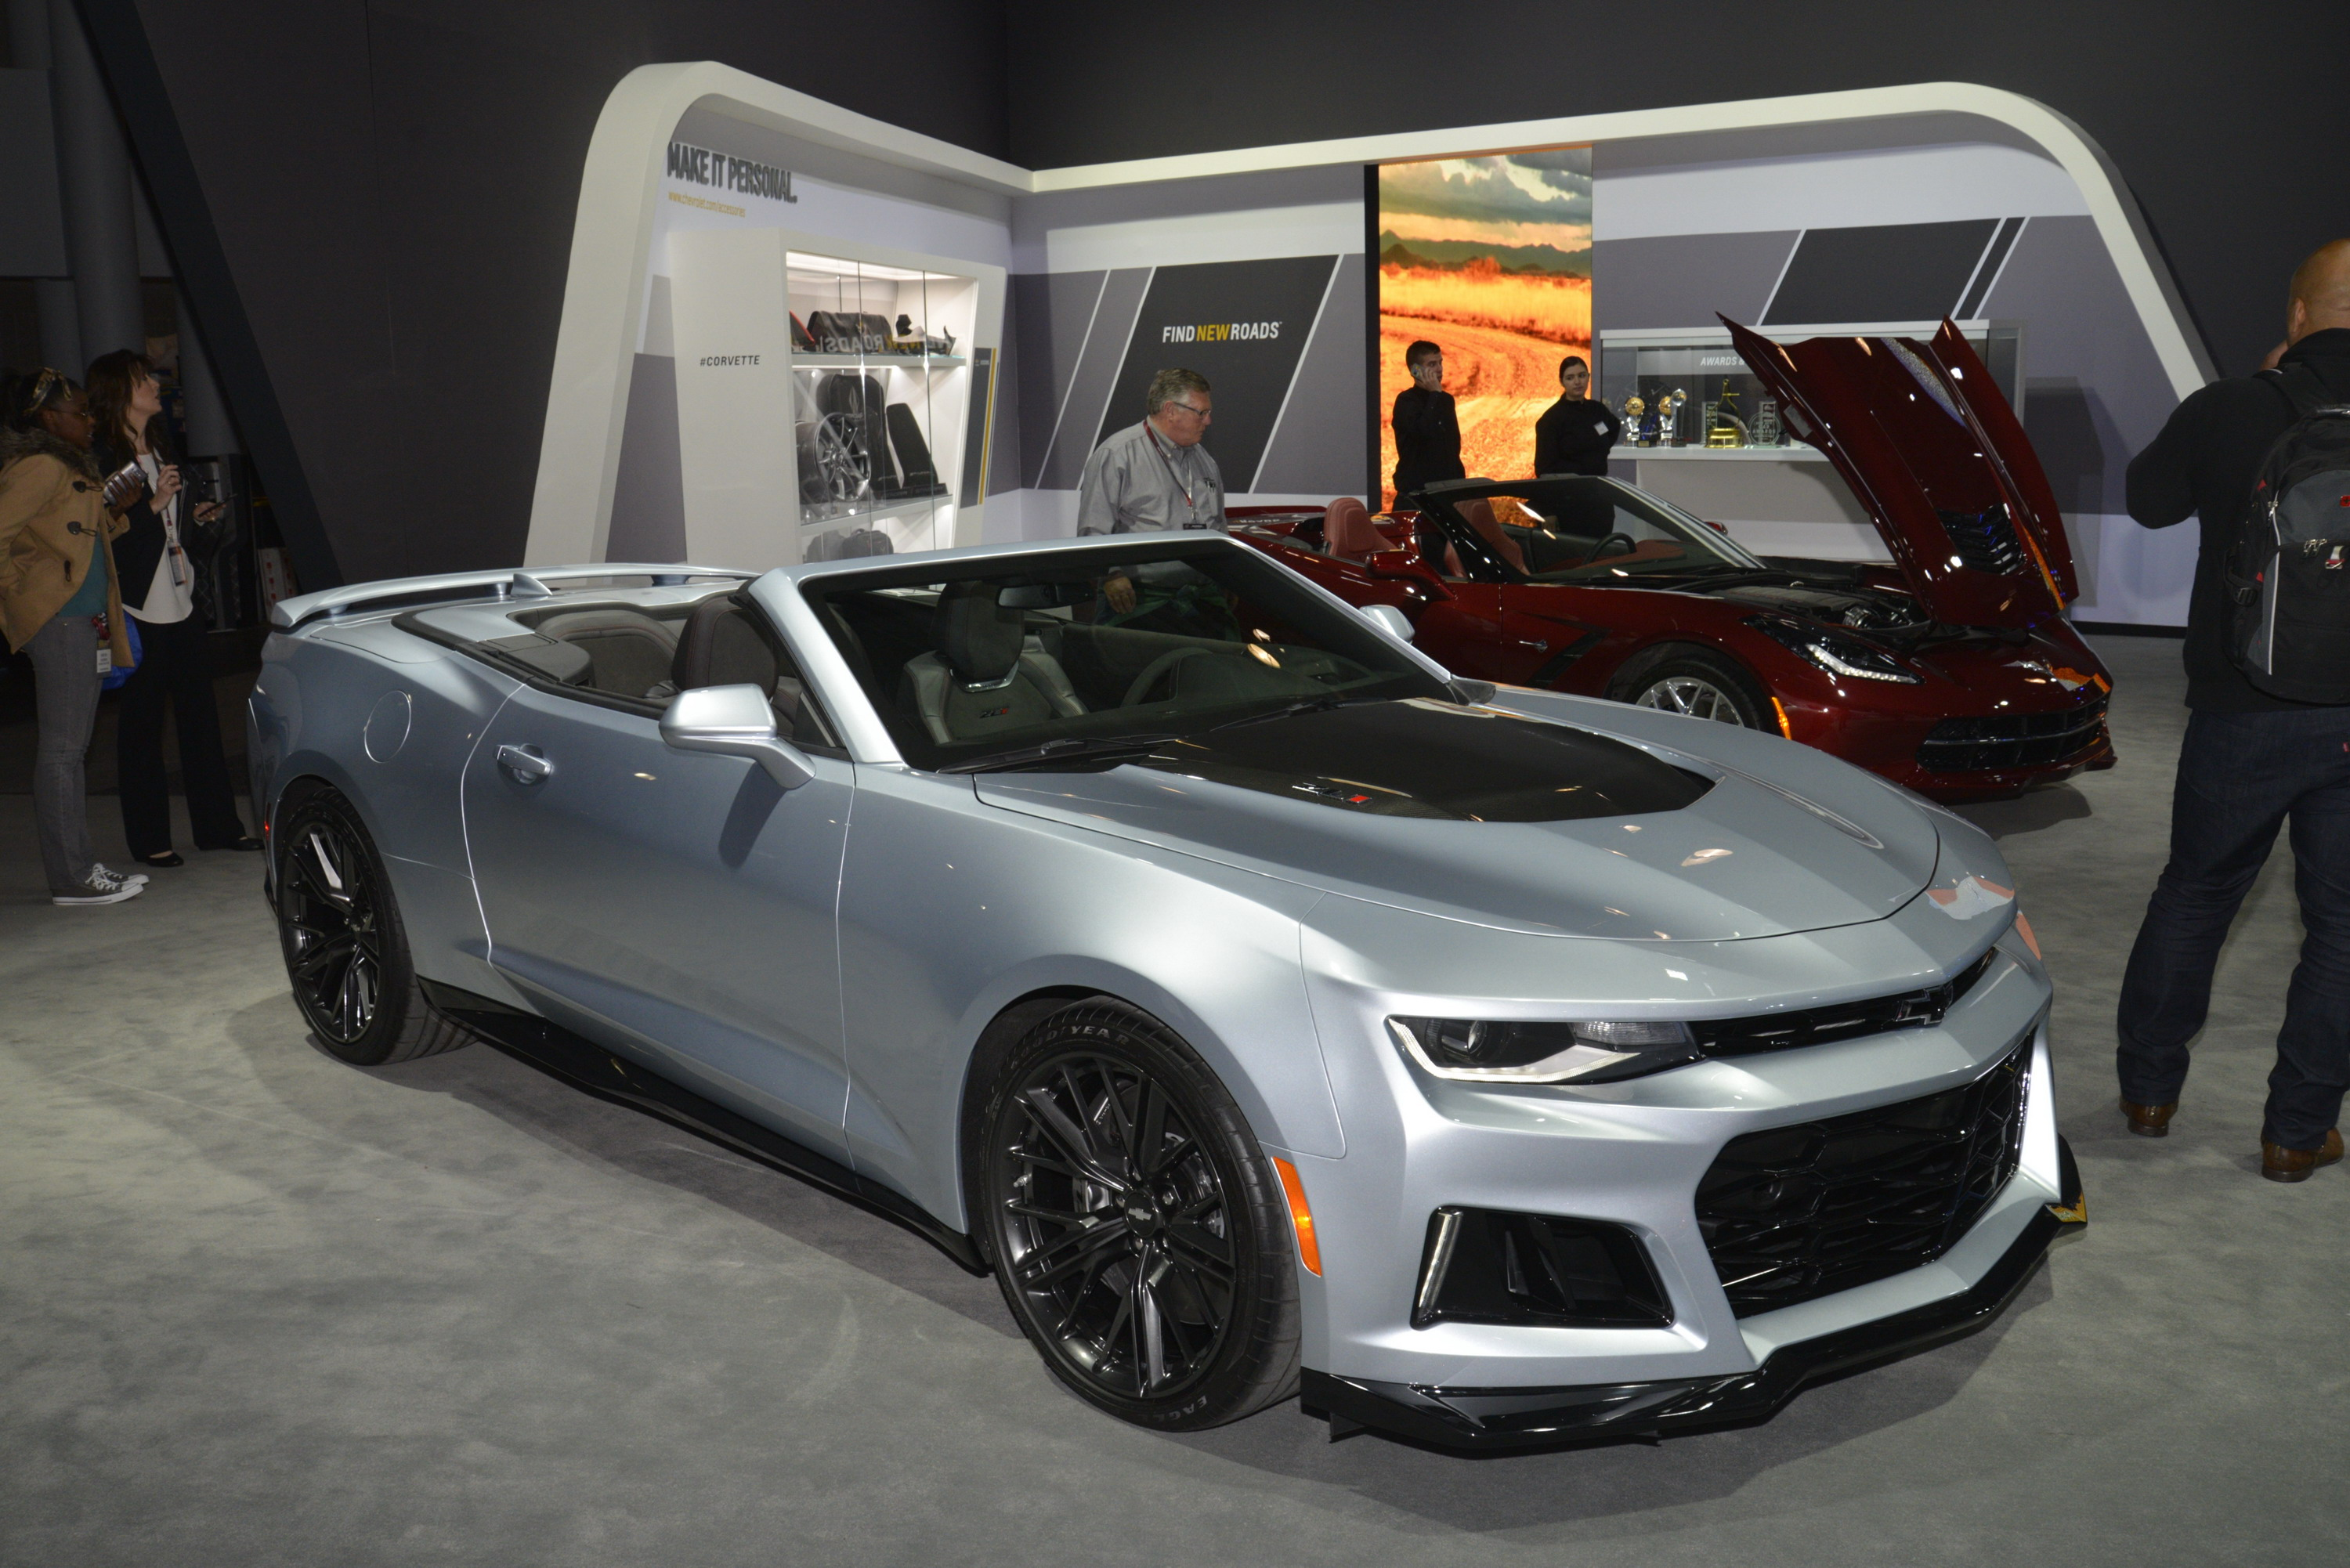 2018 Chevrolet Camaro Zl1 Convertible Gallery 670735 Top